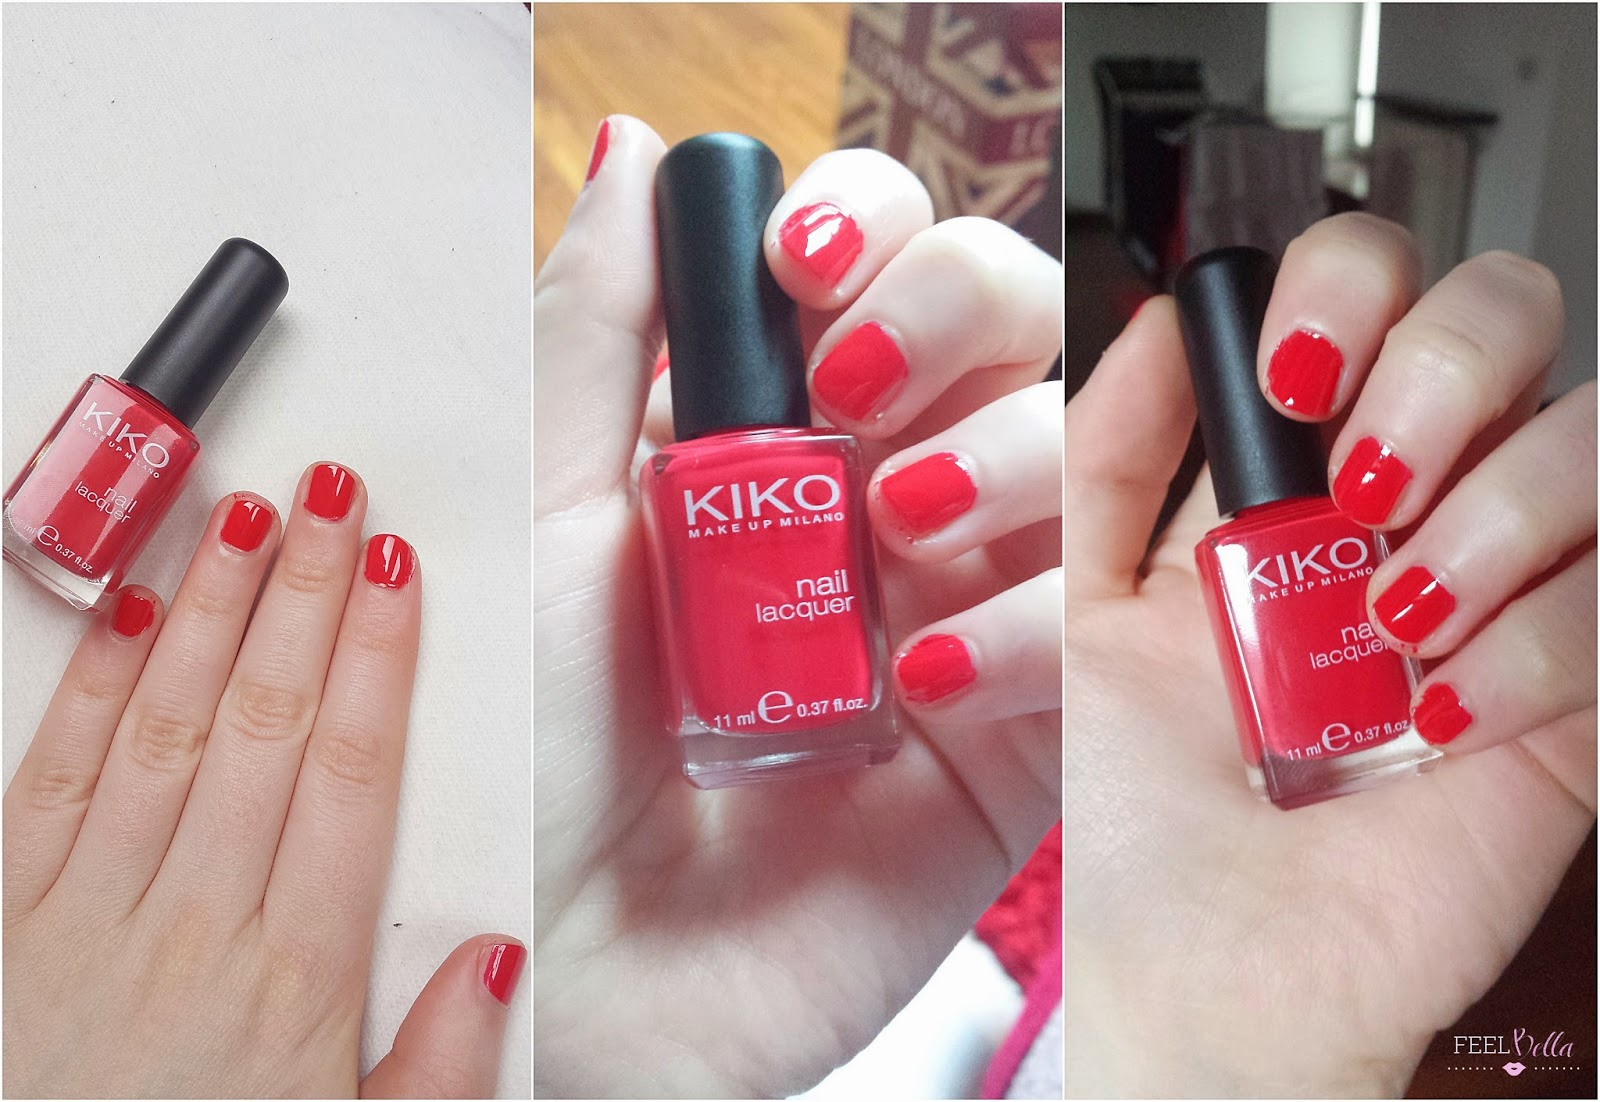 I Recently Added This Kiko Nail Lacquer To My Polishes Collection And Have Say That M Loving It The Shade Is 362 Poppy Red